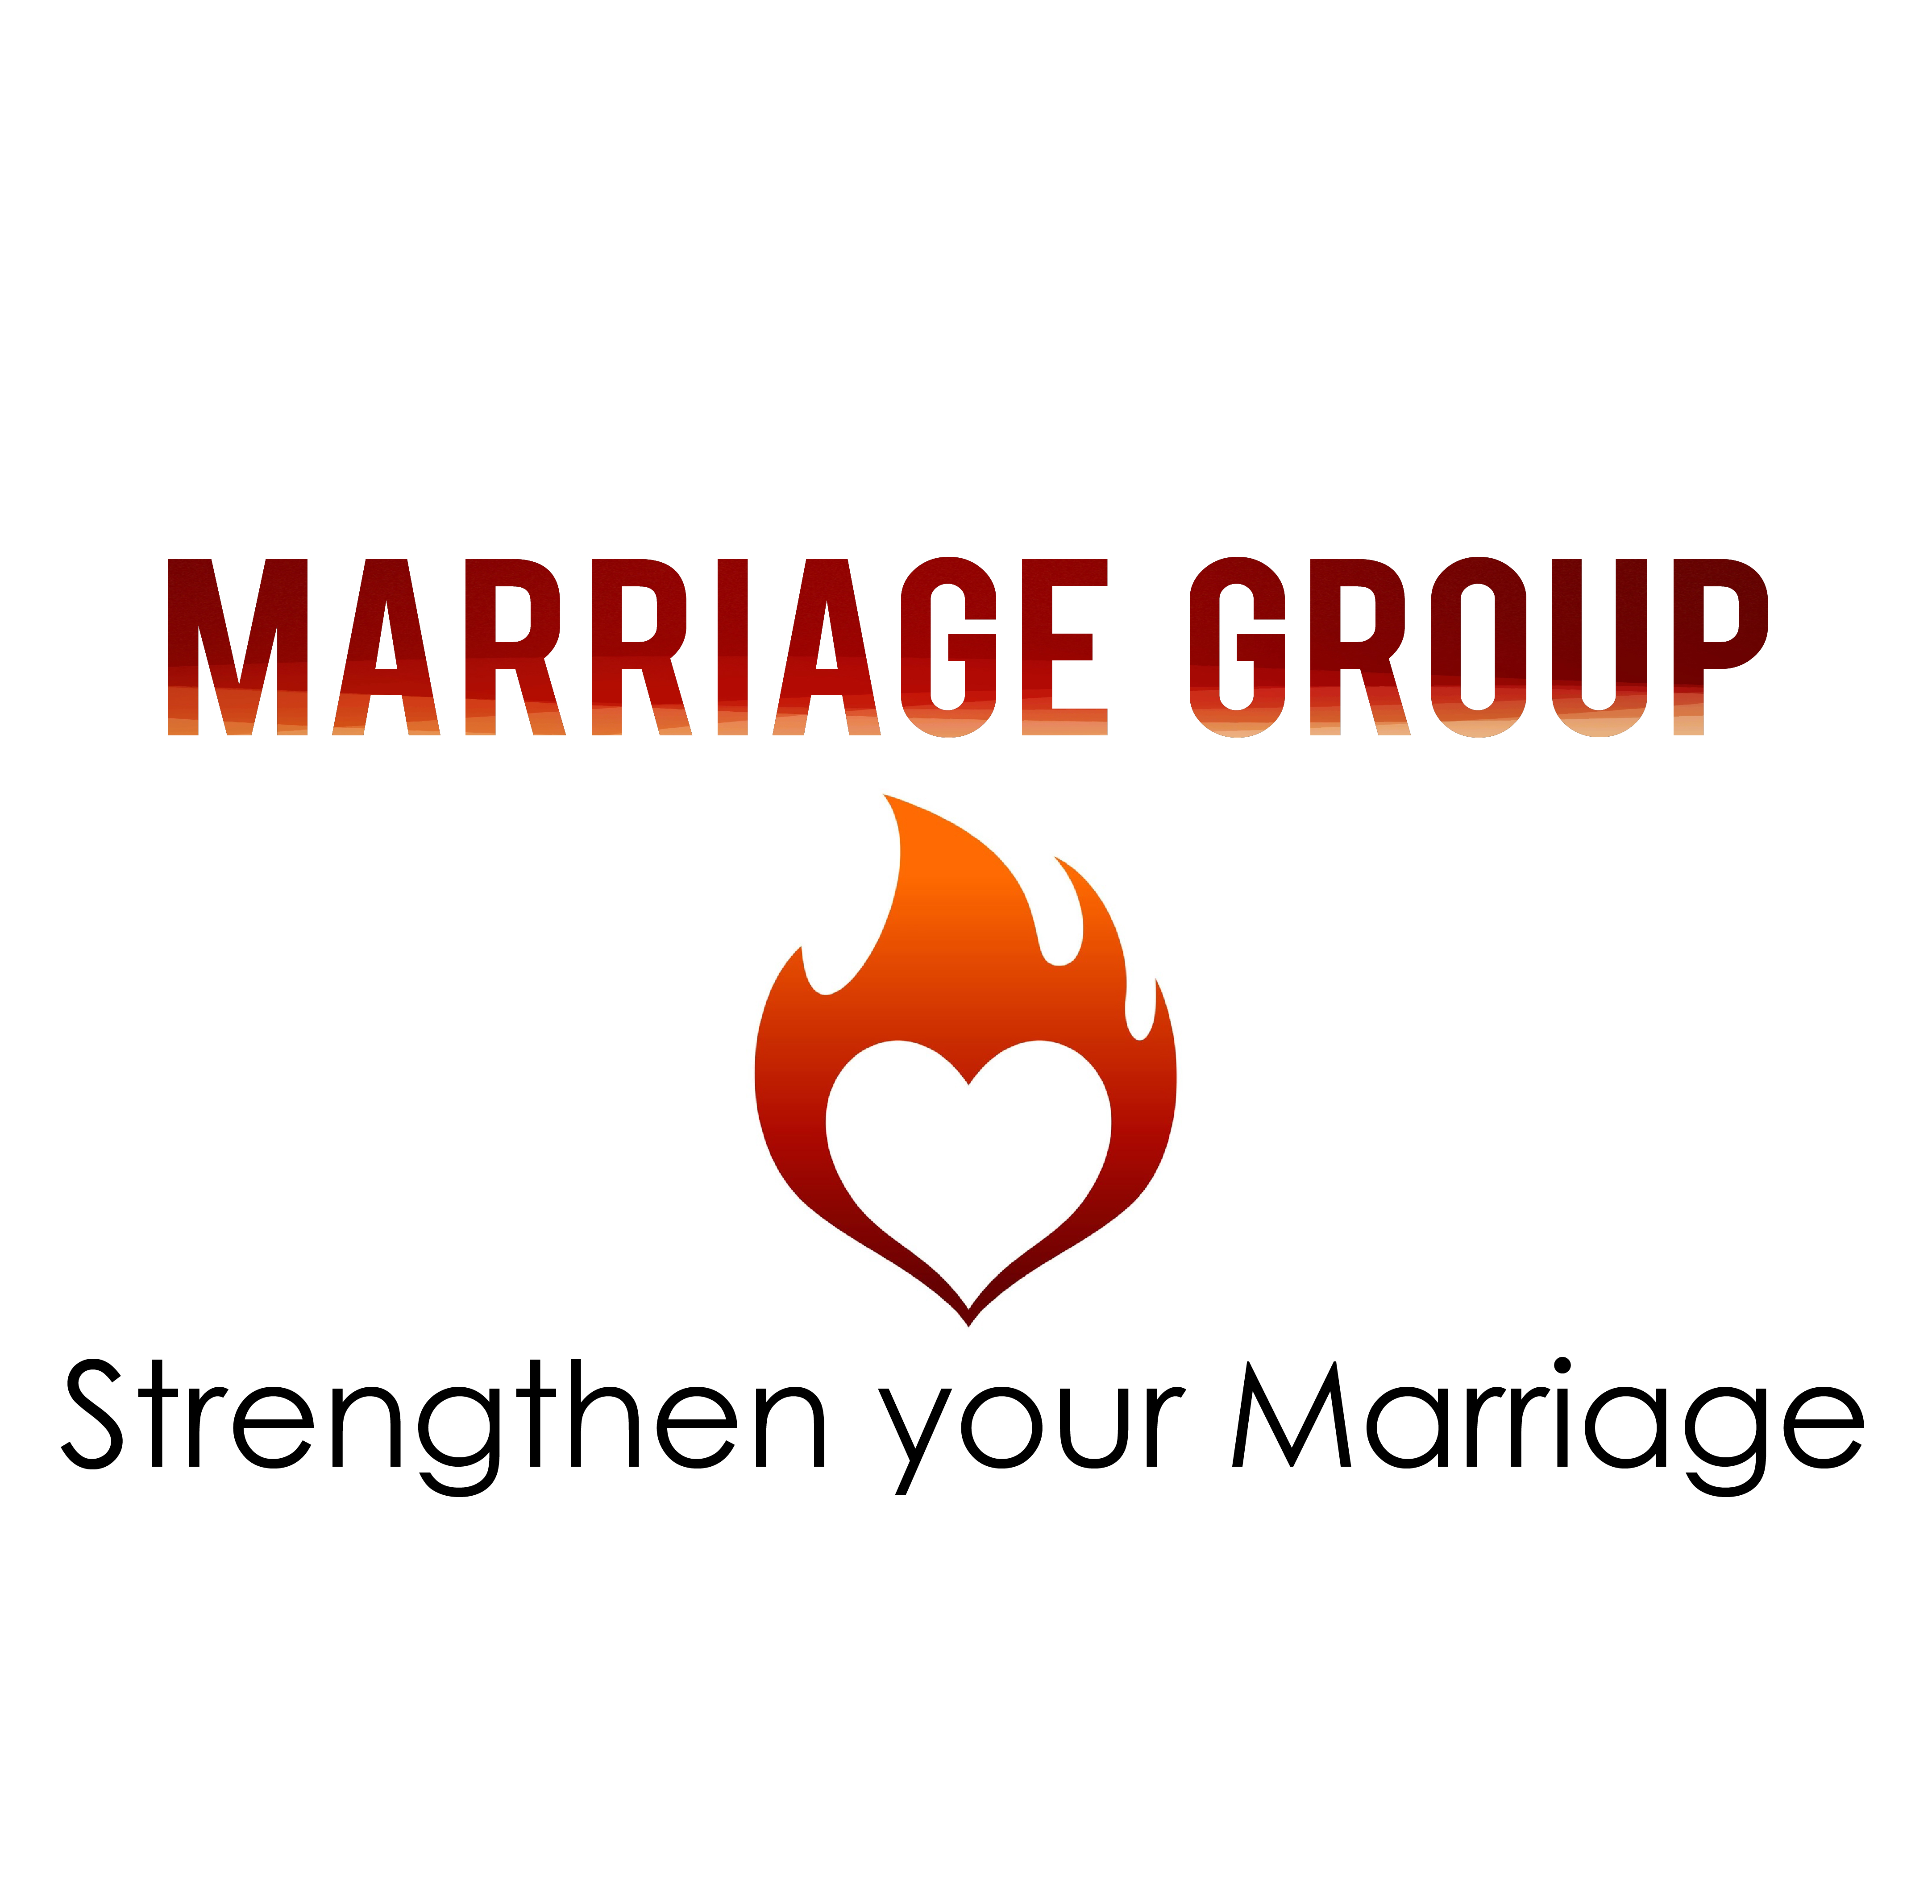 Marriage Group